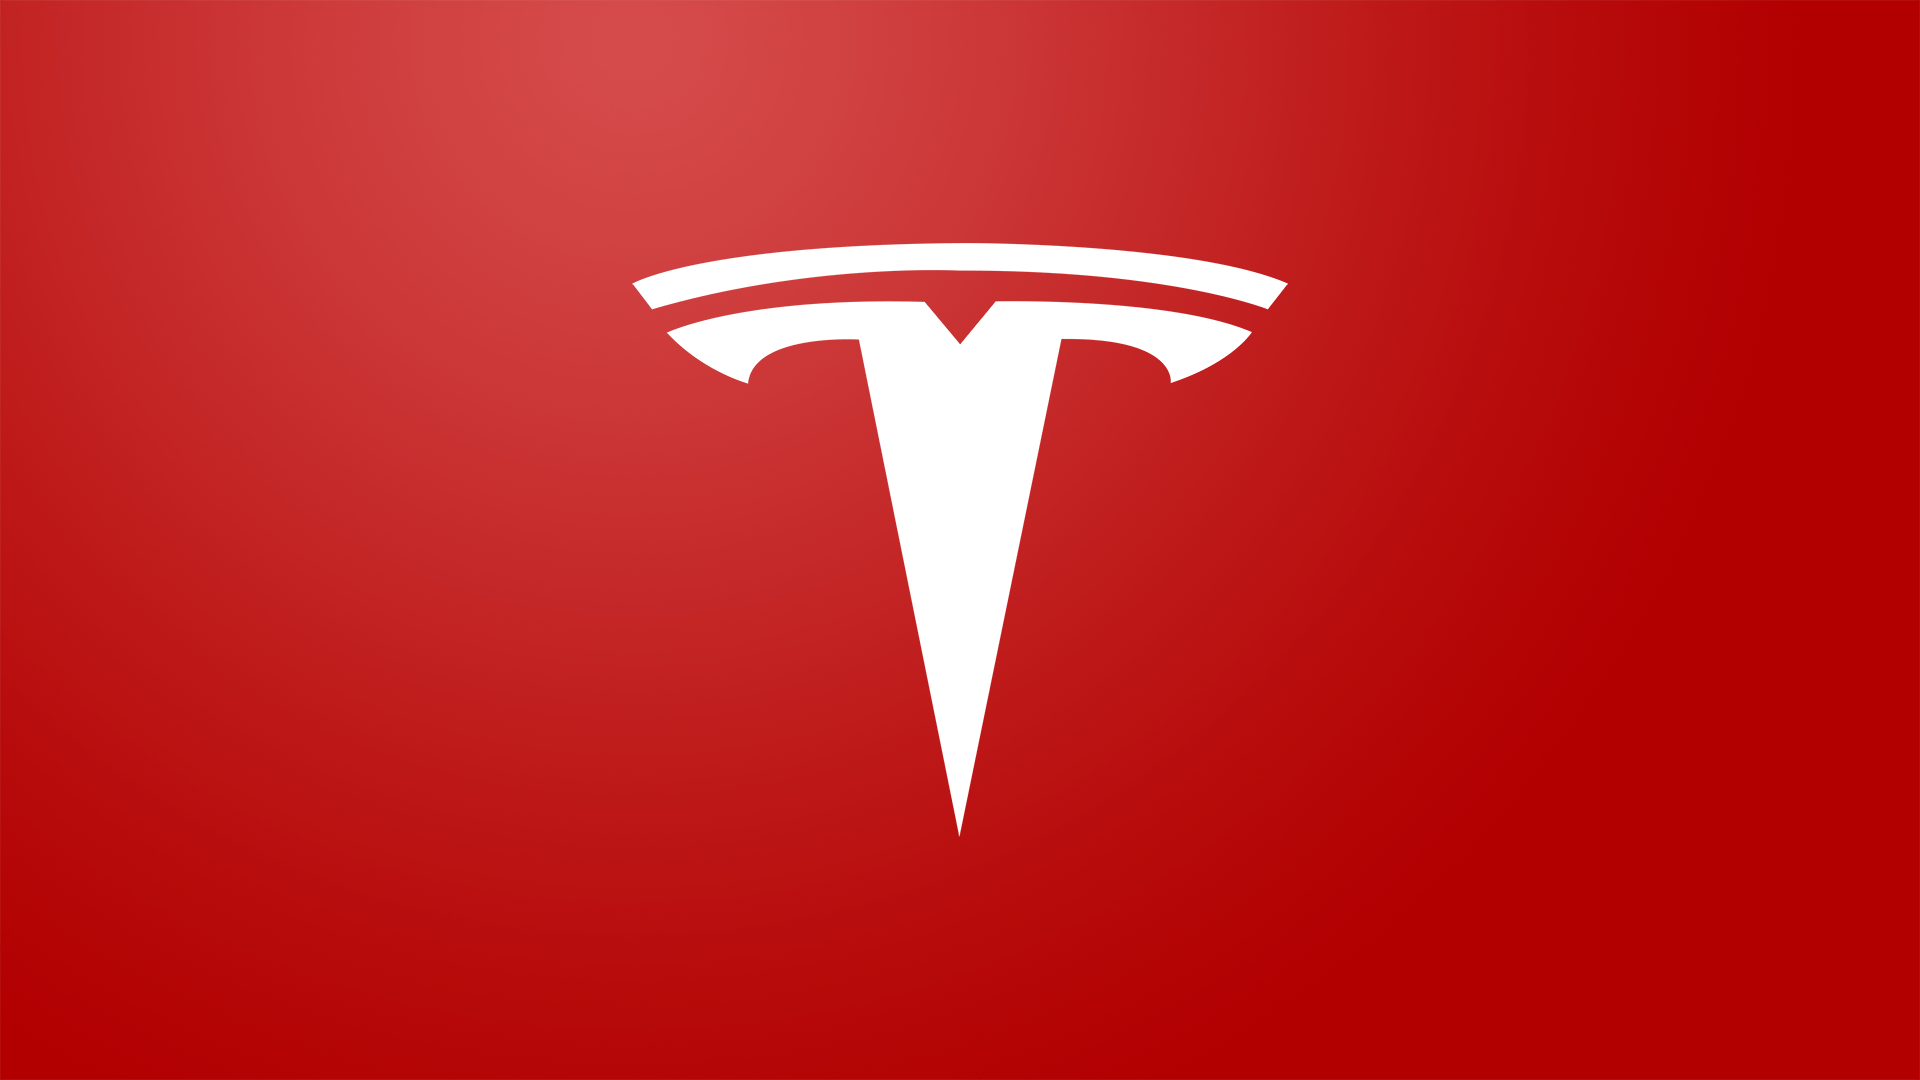 1920x1080 I'm Making A Lot of Tesla Logos For Fun, What Do You Guys Think? Any ...